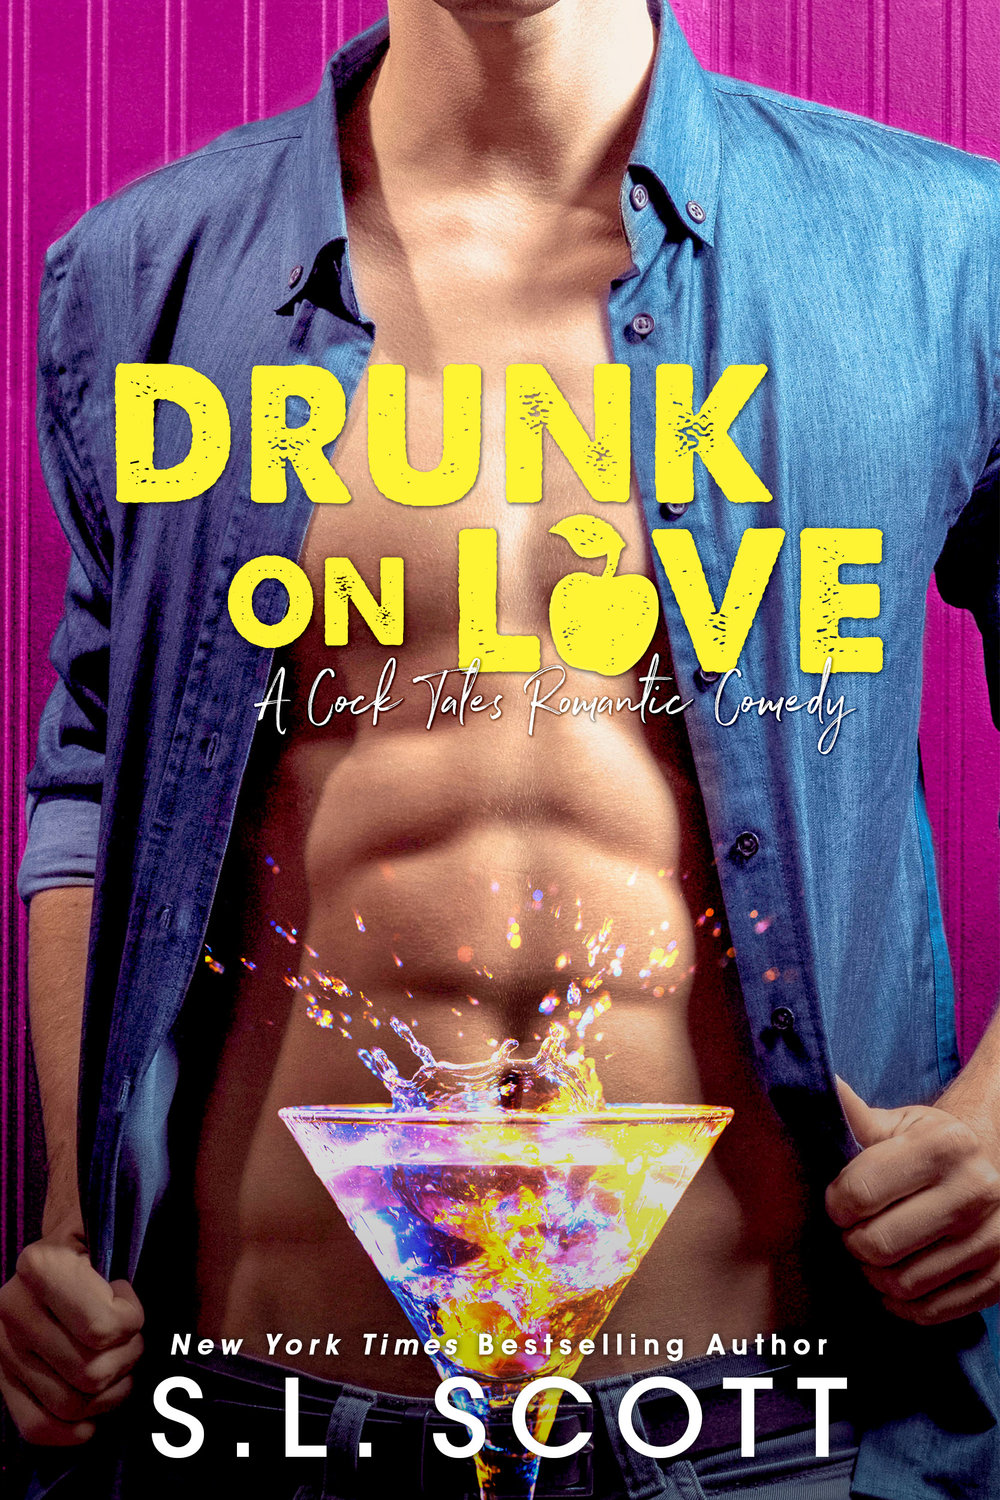 DRUNK ON LOVE Cover Ebook 2.jpg